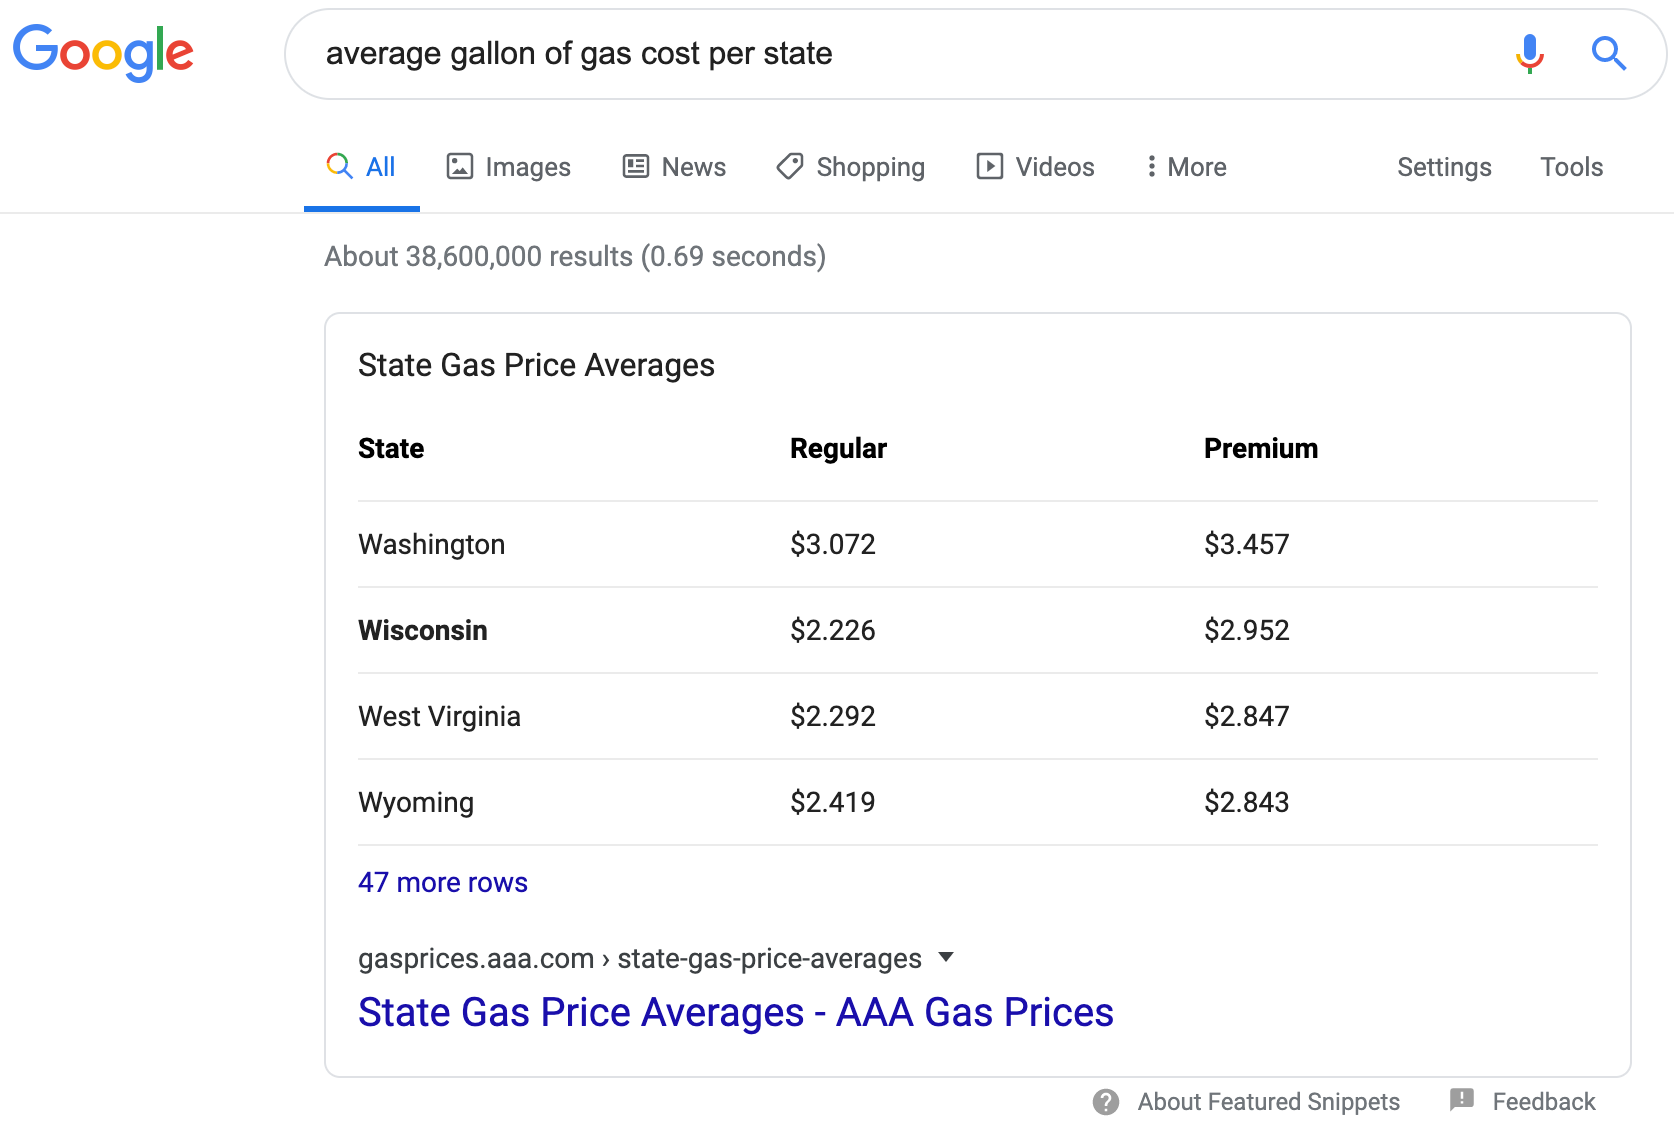 average gallon of gas cost per state - Google Search